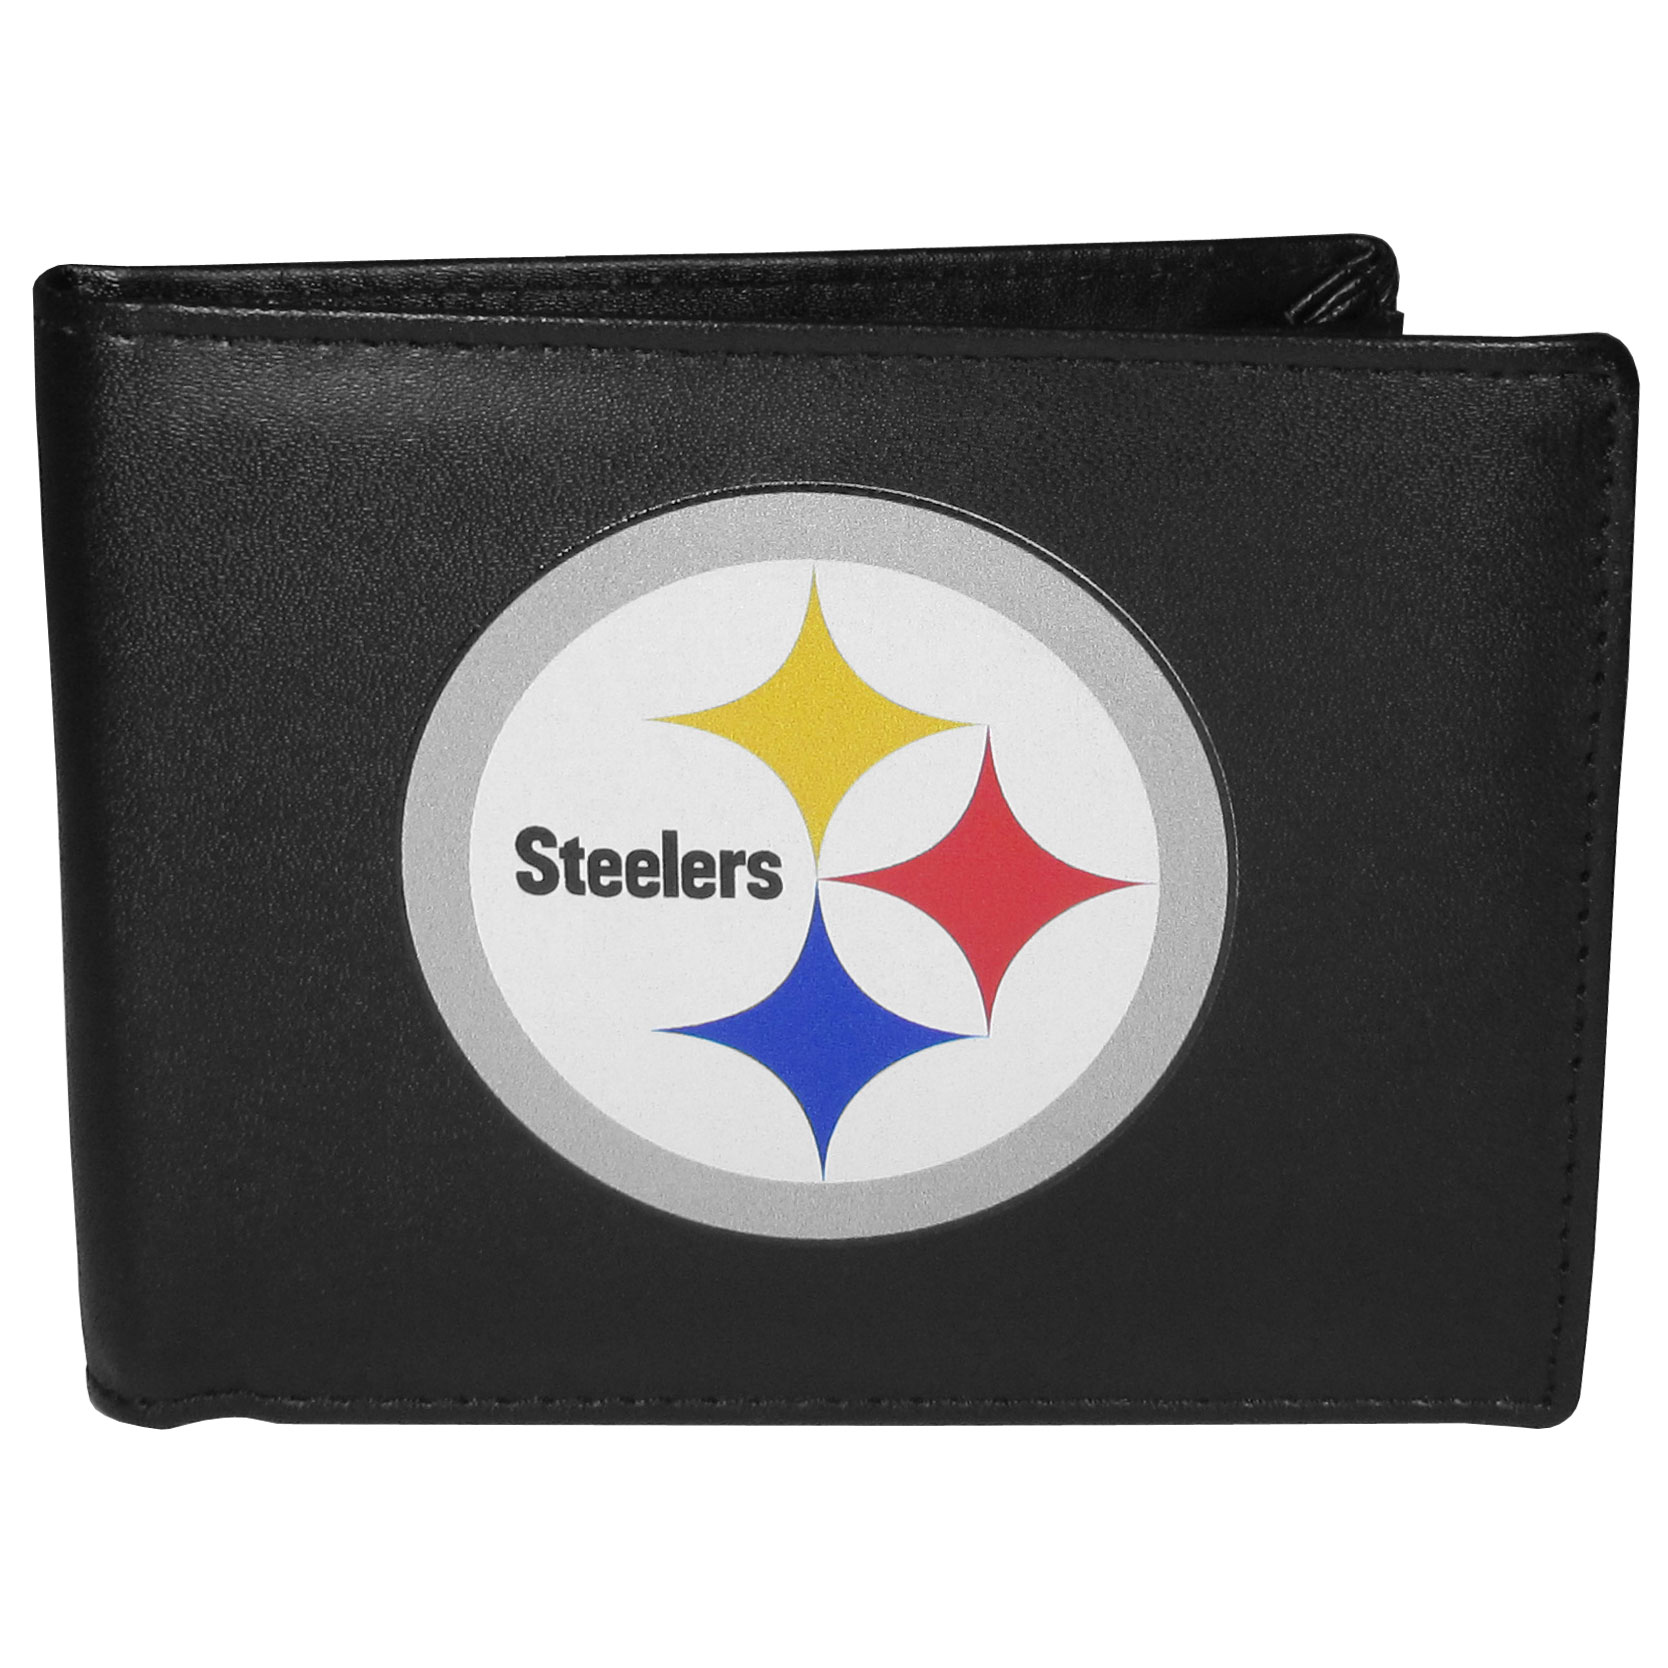 Pittsburgh Steelers Bi-fold Wallet Large Logo - Sports fans do not have to sacrifice style with this classic bi-fold wallet that sports the Pittsburgh Steelers extra large logo. This men's fashion accessory has a leather grain look and expert craftmanship for a quality wallet at a great price. The wallet features inner credit card slots, windowed ID slot and a large billfold pocket. The front of the wallet features a printed team logo.